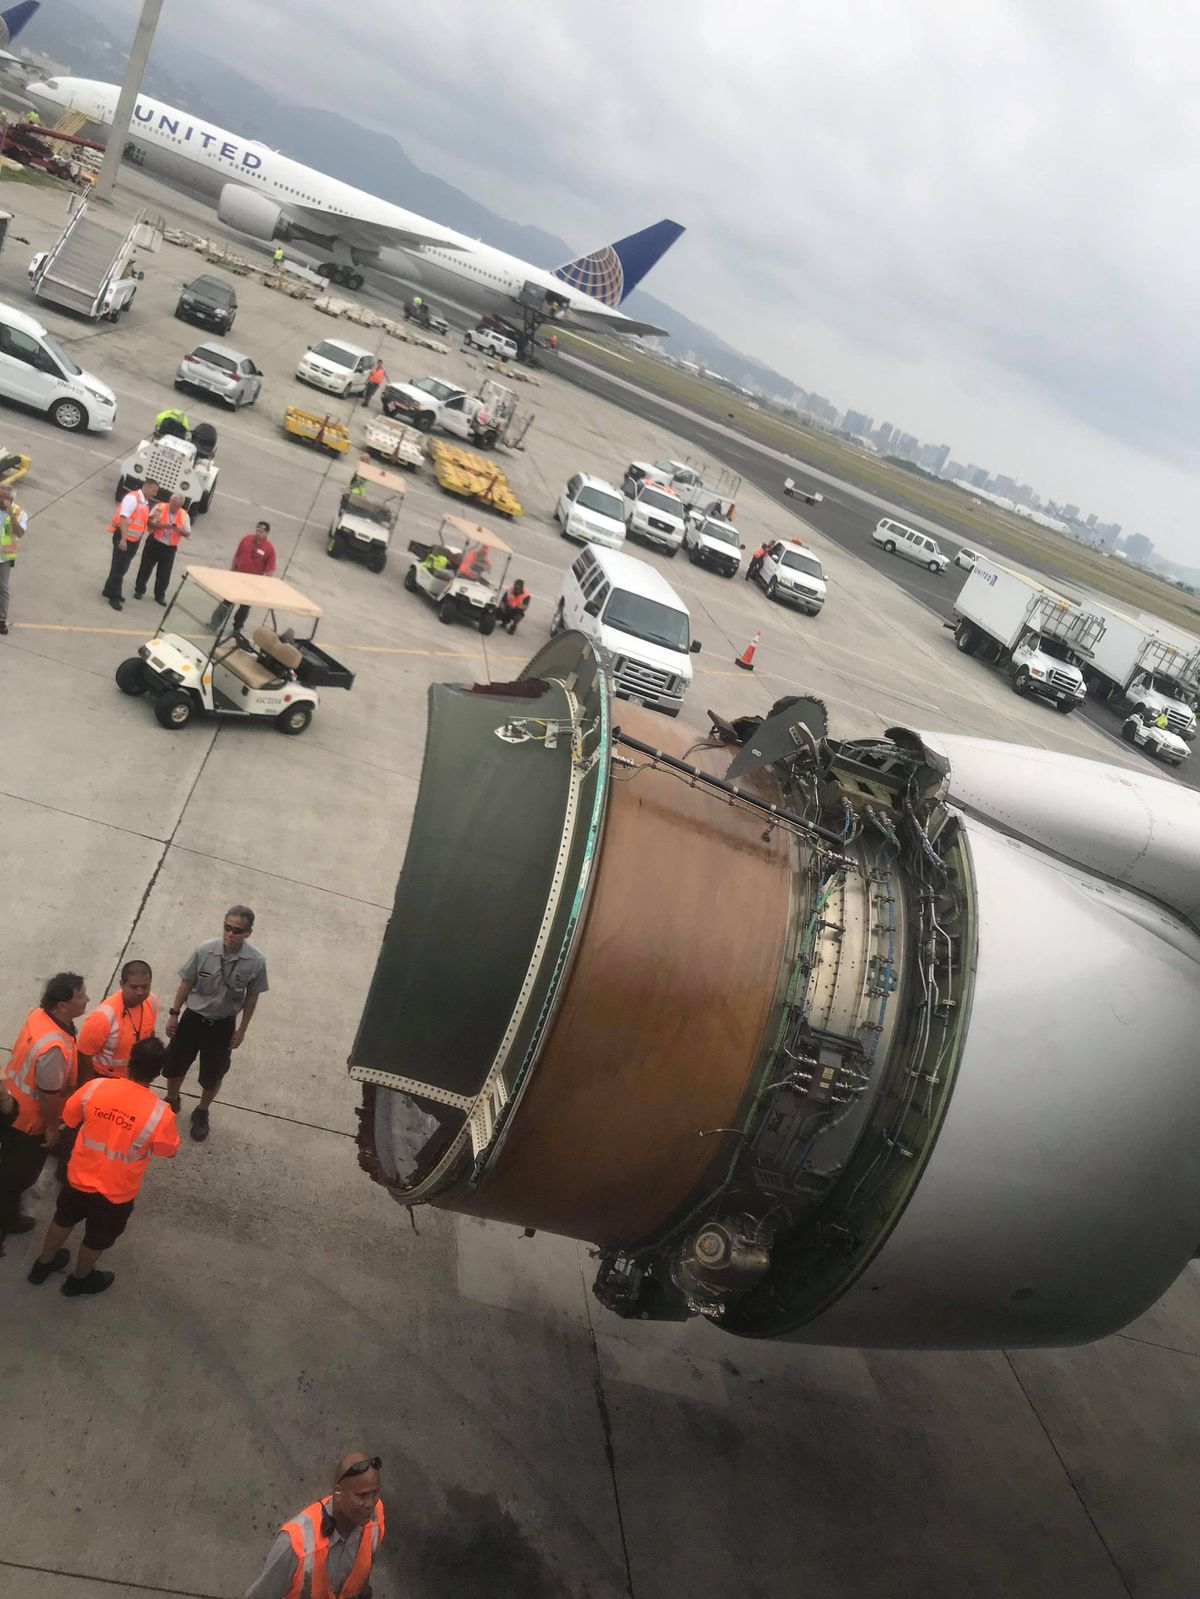 The plane with engine problems on the tarmac Tuesday in Honolulu in this picture obtained from social media. Mariah Amerine/via REUTERS